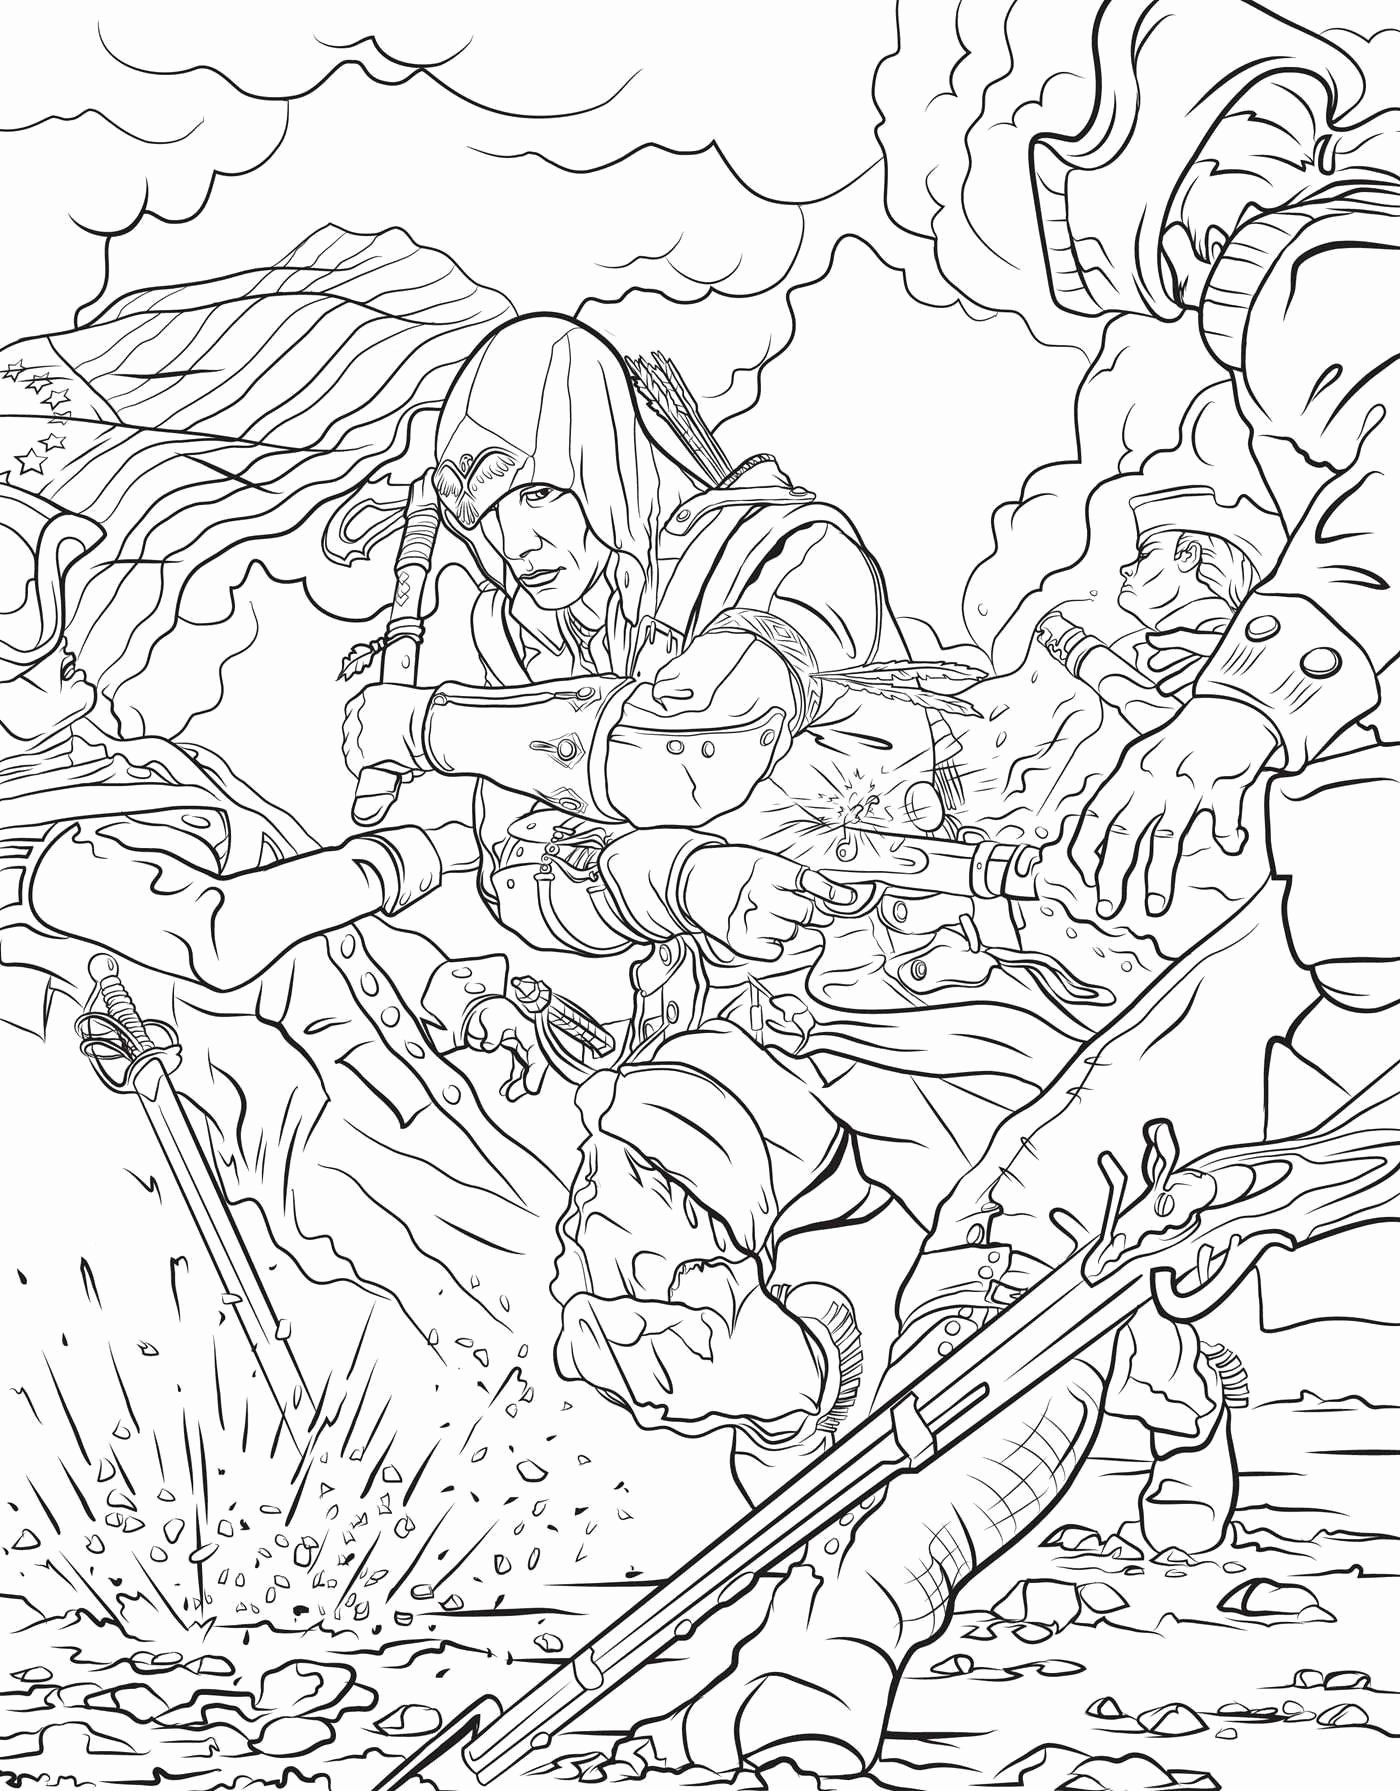 Assassin 039 S Creed Coloring Book Lovely 25 Cool Witcher Coloring Book Coloring Books Anatomy Coloring Book Book Dragon